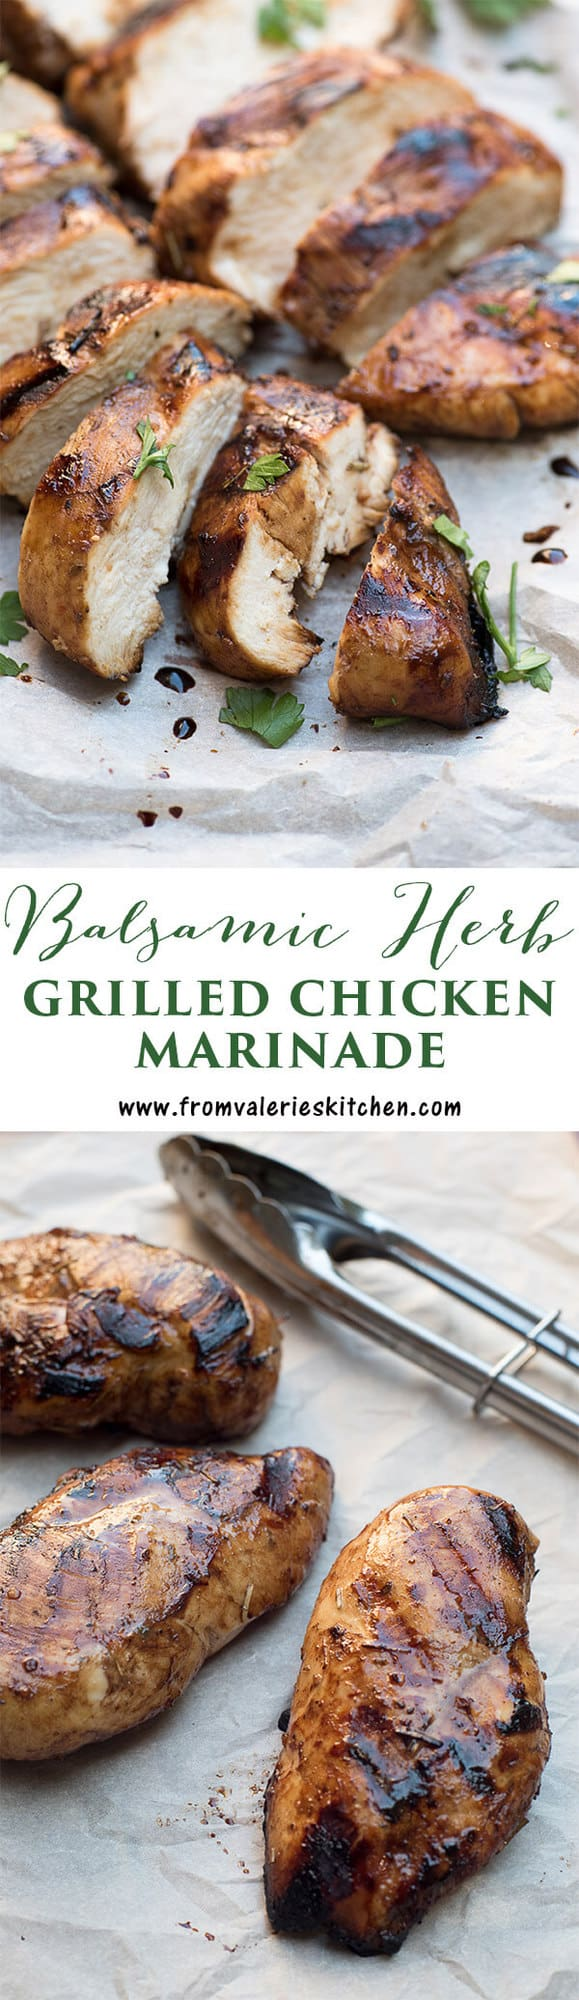 Balsamic Herb Grilled Chicken